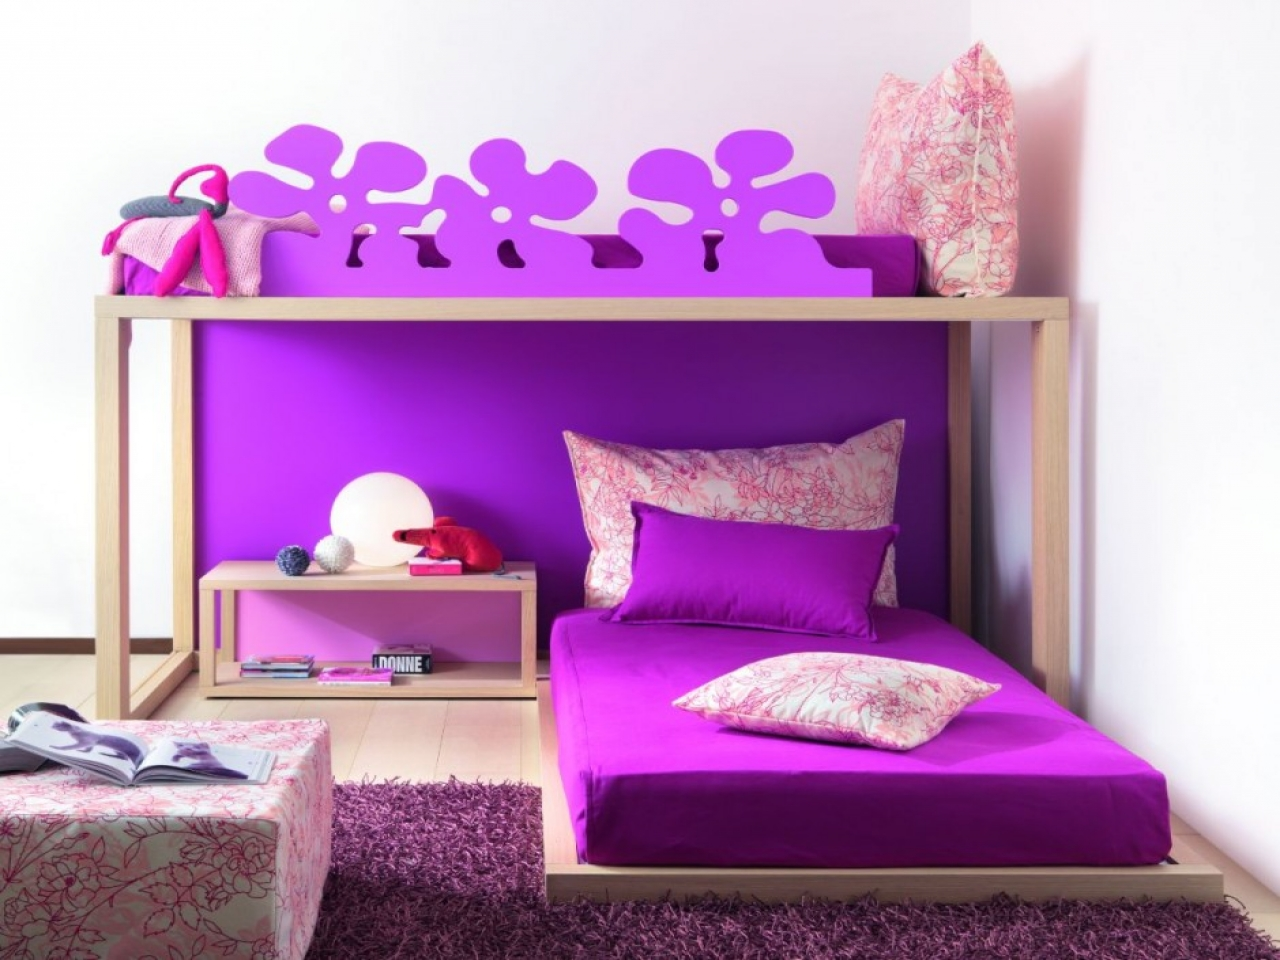 Cute bedroom for girls bahay ofw - Photos of girls bedroom ...